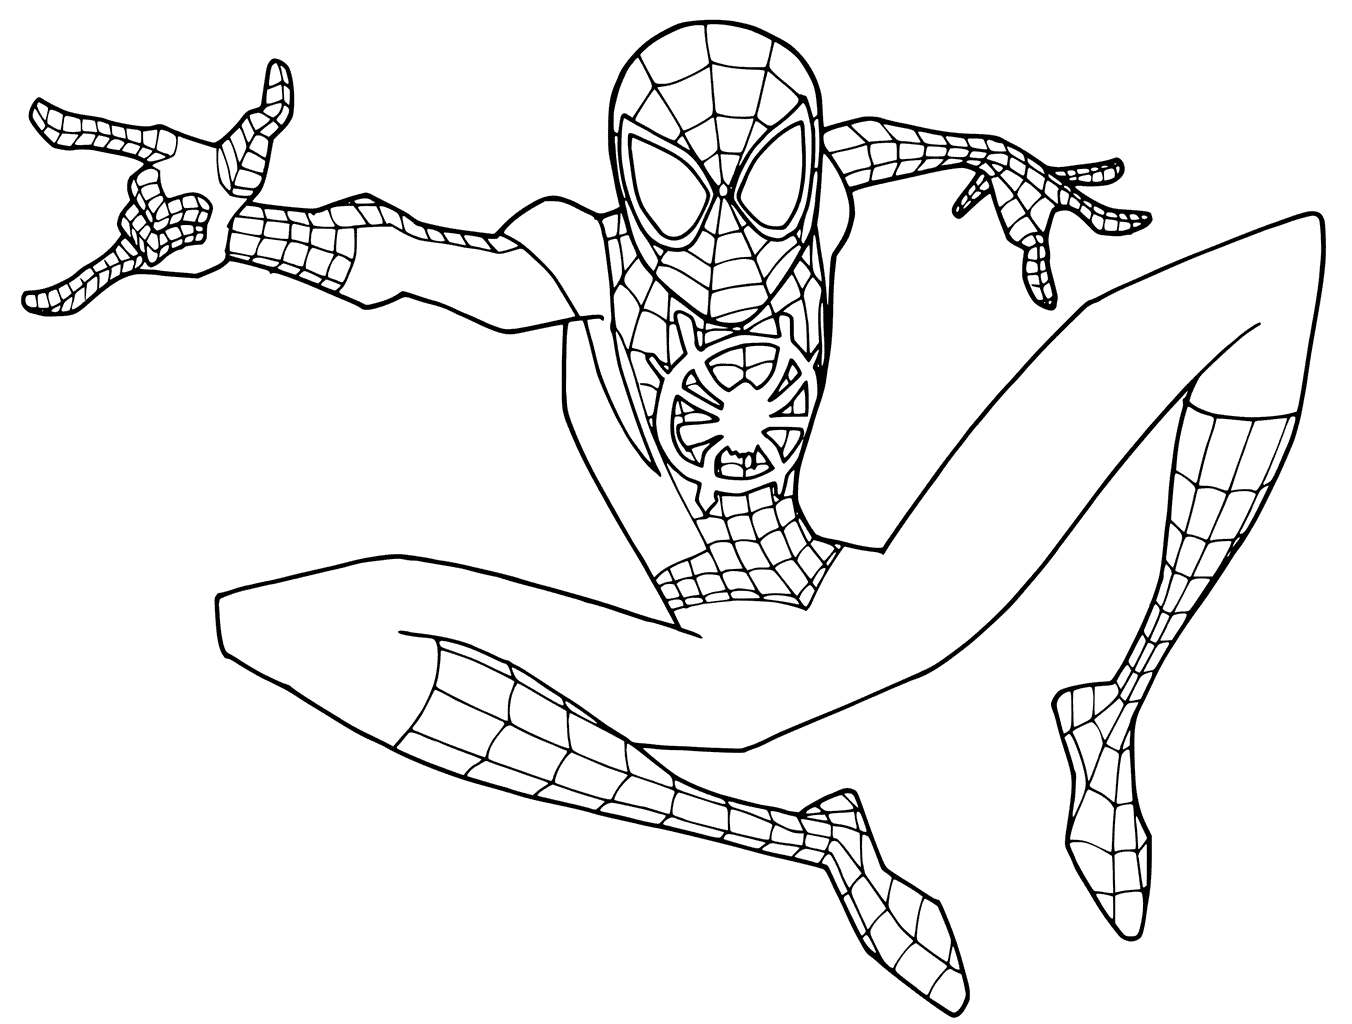 Spiderman Para Colorear Gratis: Spider Man Into The Spider Verse Coloring Pages Young